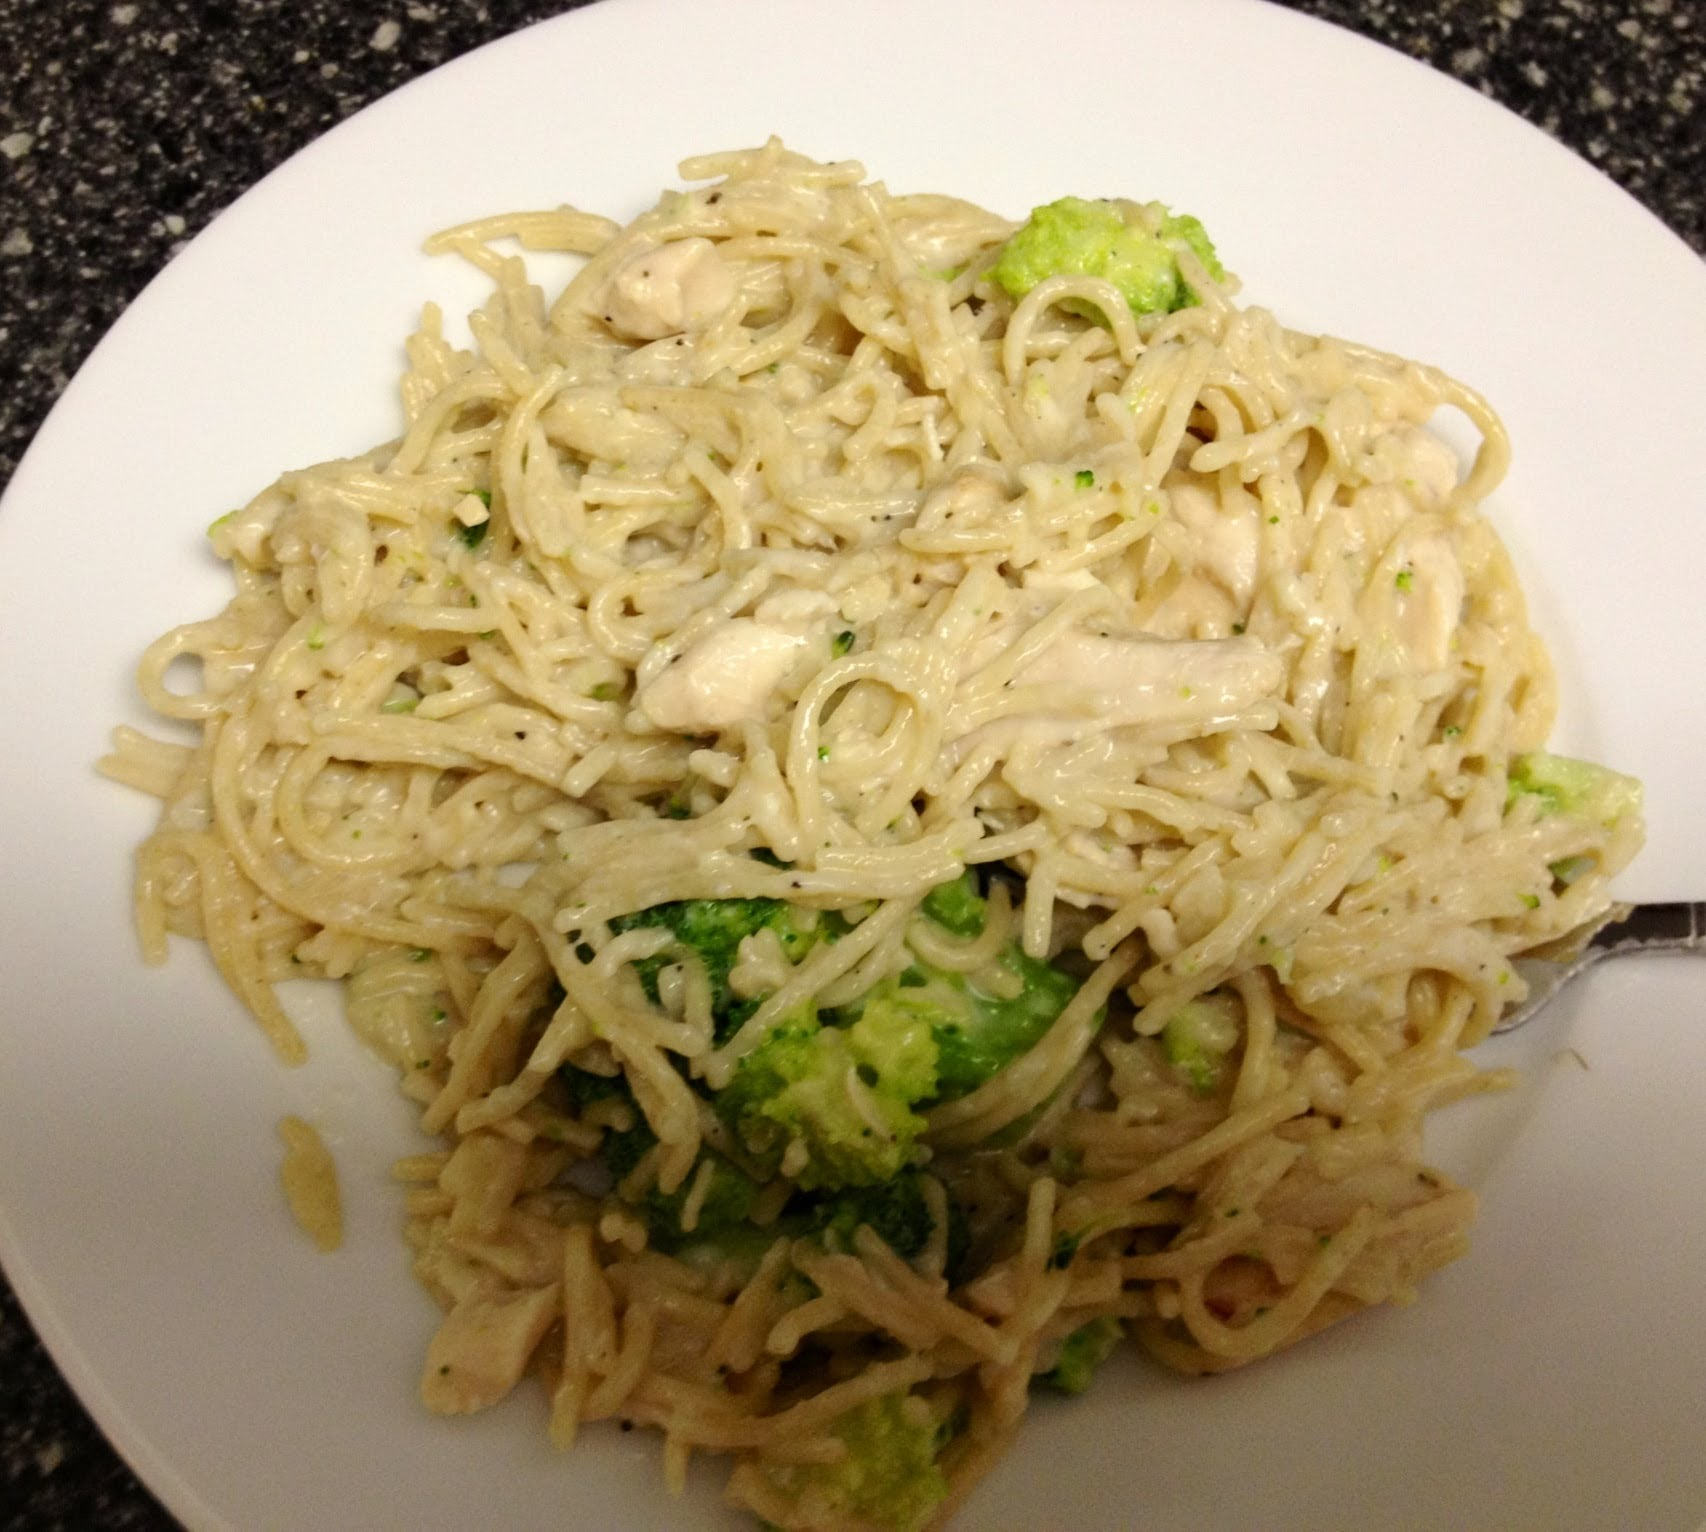 Weight Watchers Friendly Dinner Recipe – Cheesy Broccoli and Chicken Alfredo! 5 Point Meal!